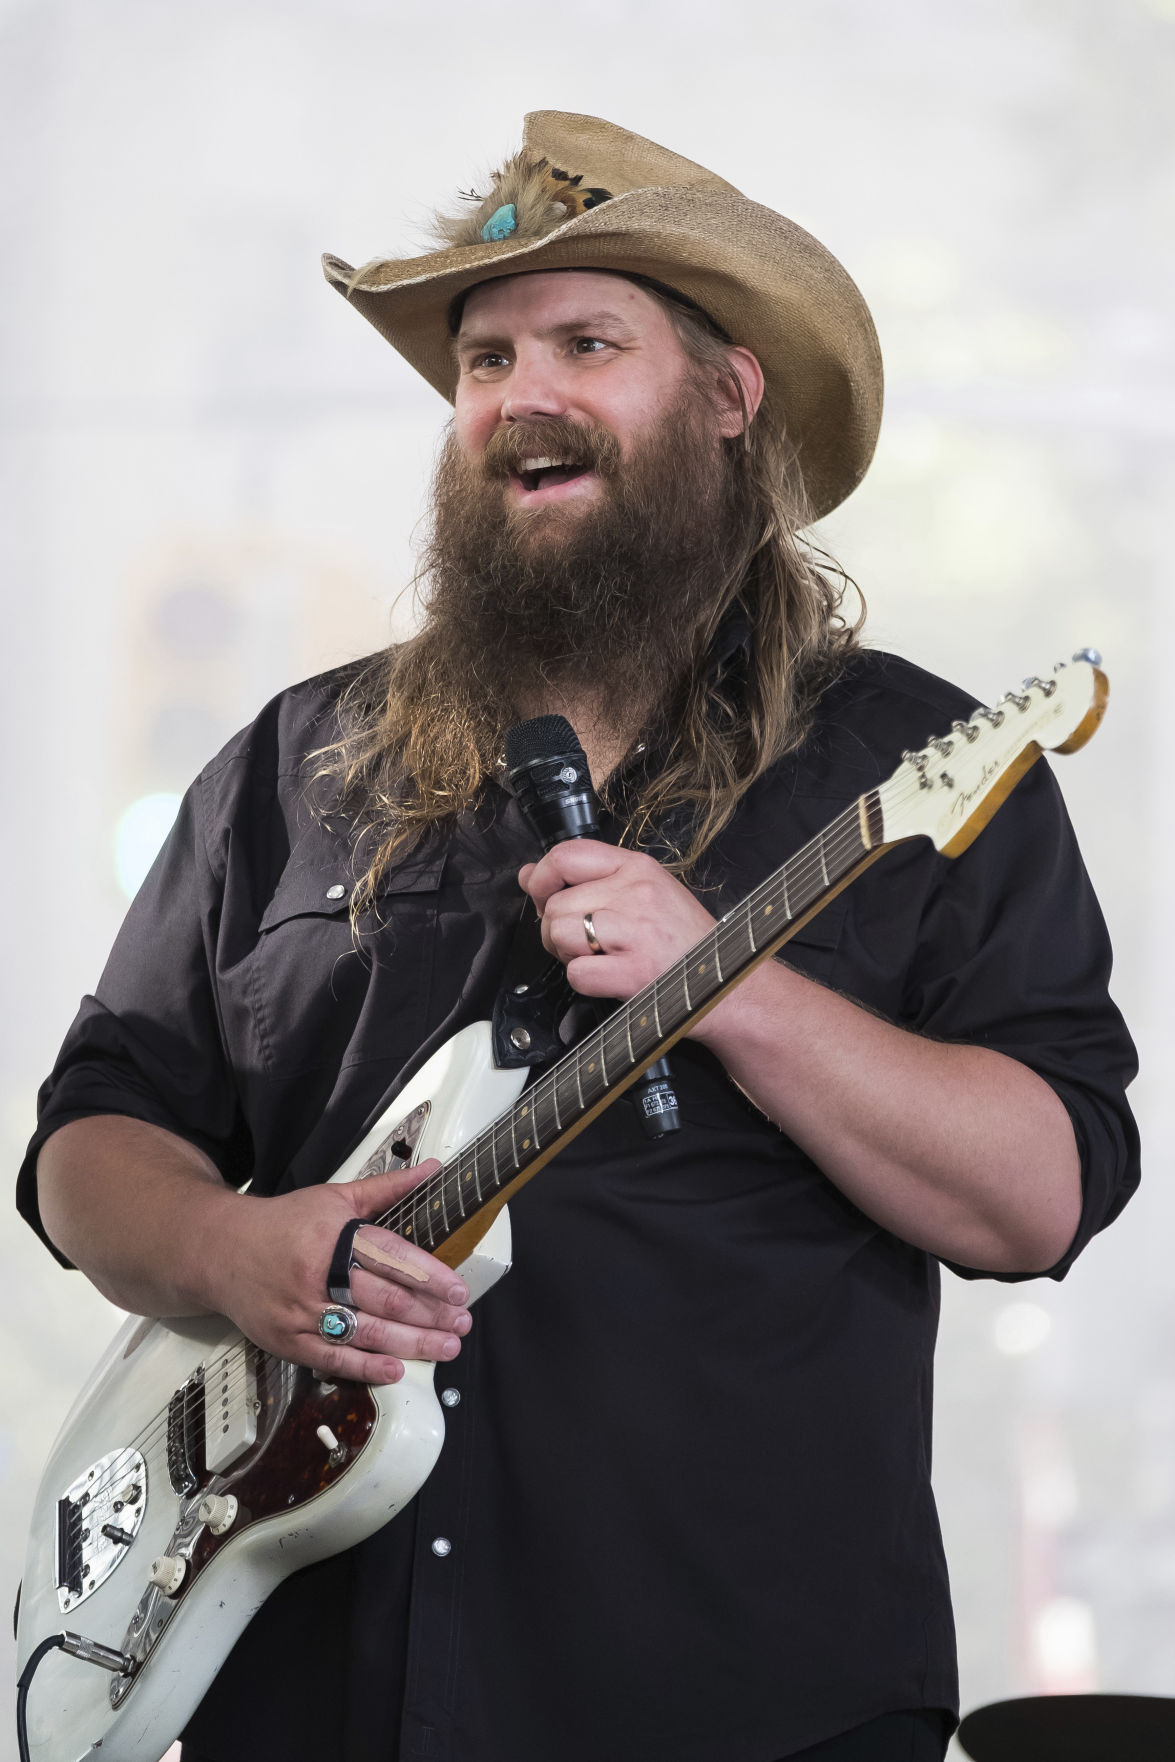 Chris Stapleton Performs on NBC's Today Show